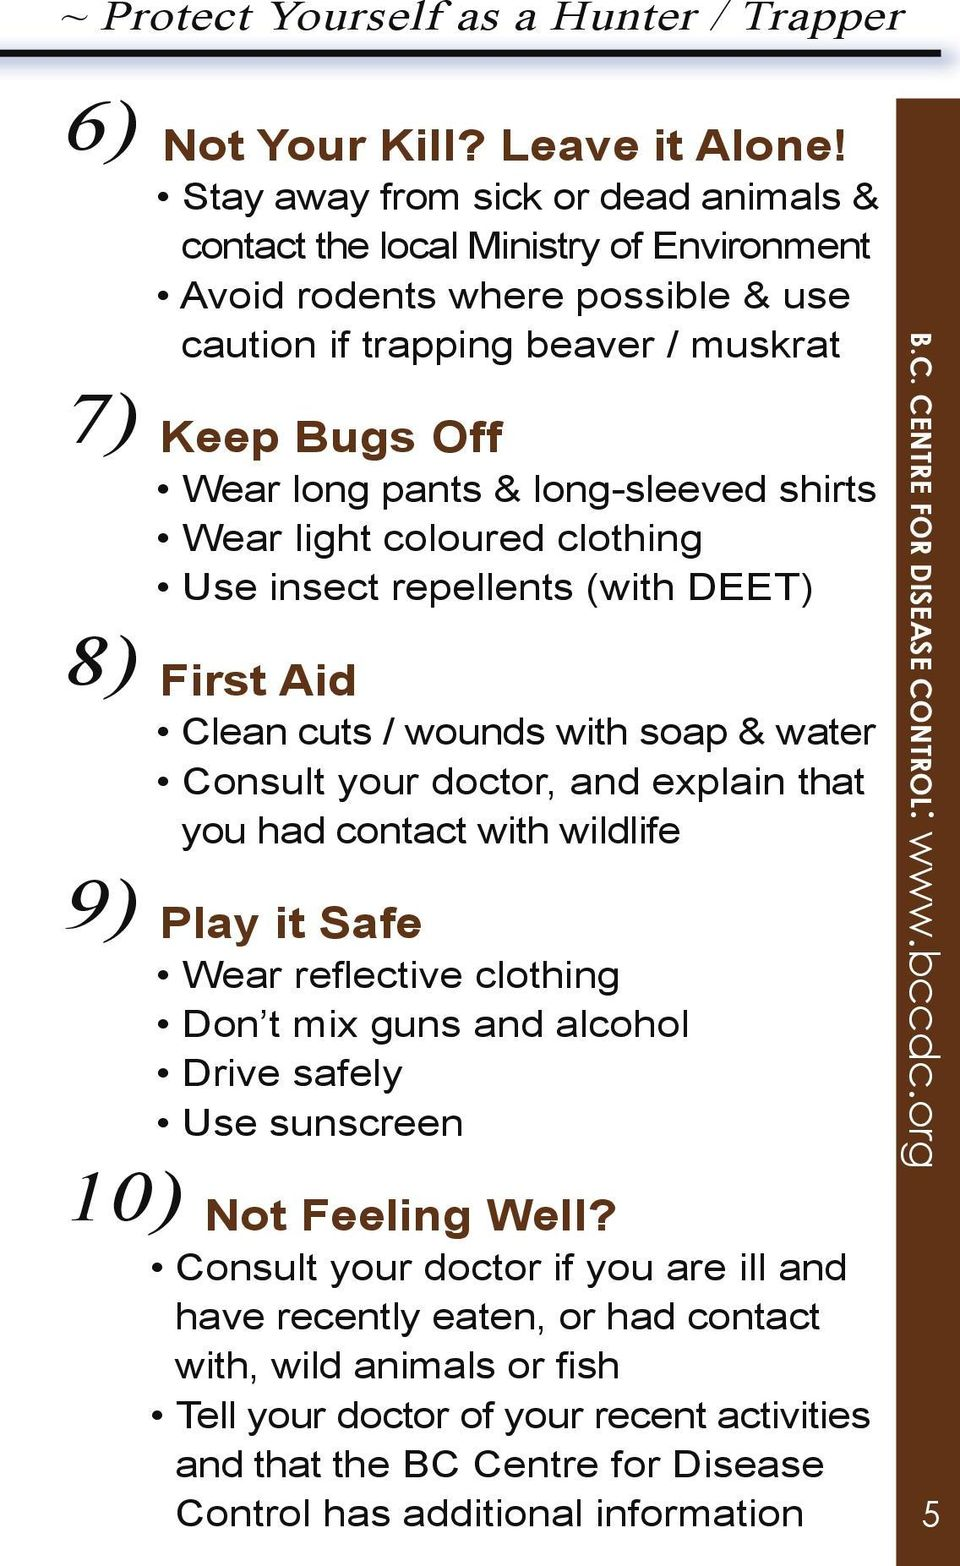 shirts Wear light coloured clothing Use insect repellents (with DEET) 8) First Aid Clean cuts / wounds with soap & water Consult your doctor, and explain that you had contact with wildlife 9) Play it